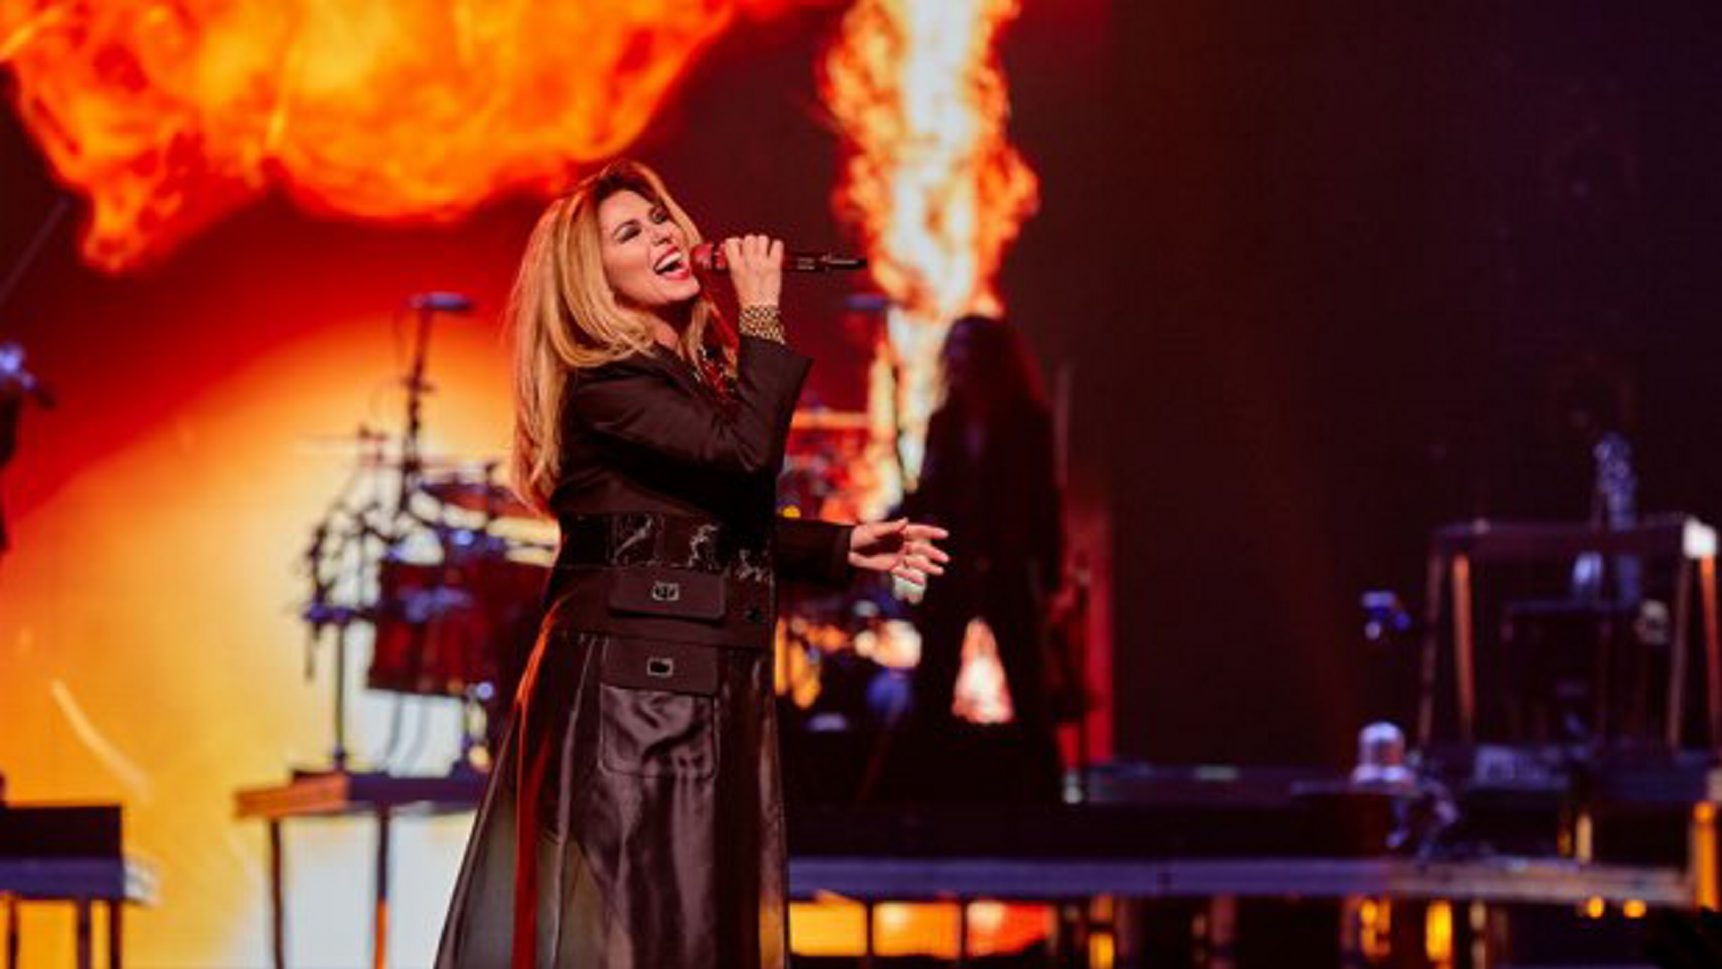 """Shania Twain brings her """"Rock This Country Tour"""" to First Niagara Center Oct. 3."""